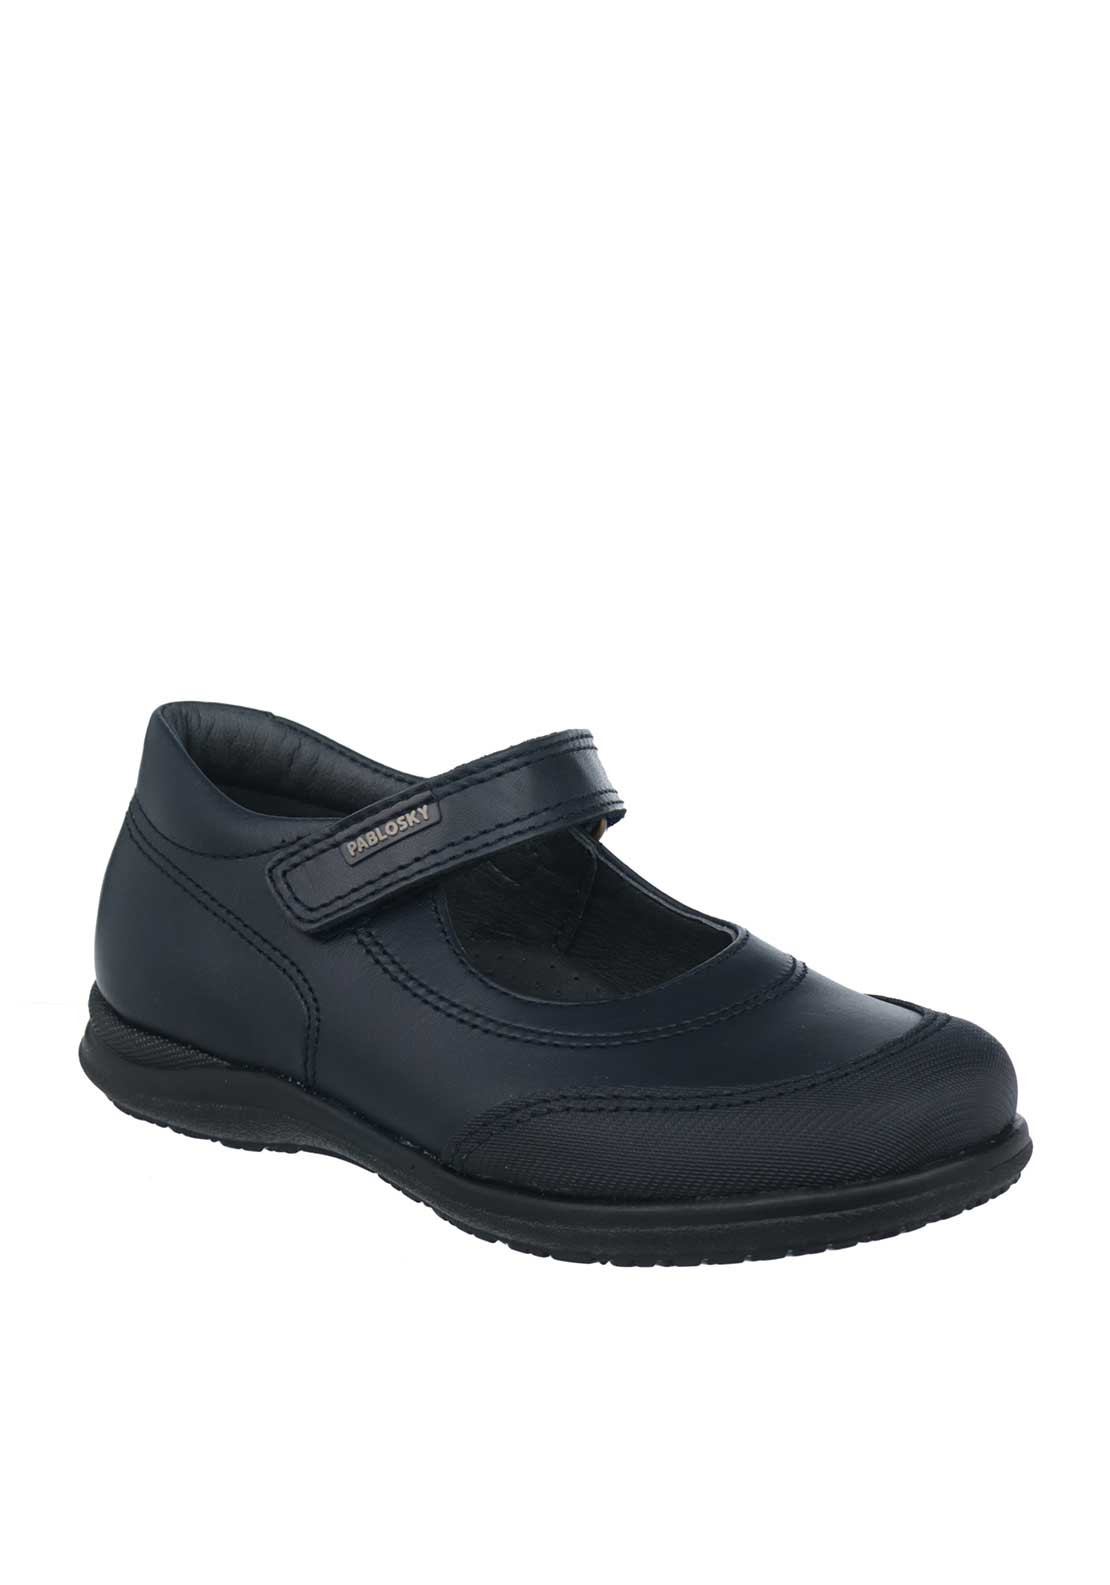 Pablosky Girls Velcro Strap Mary Jane School Shoes, Navy